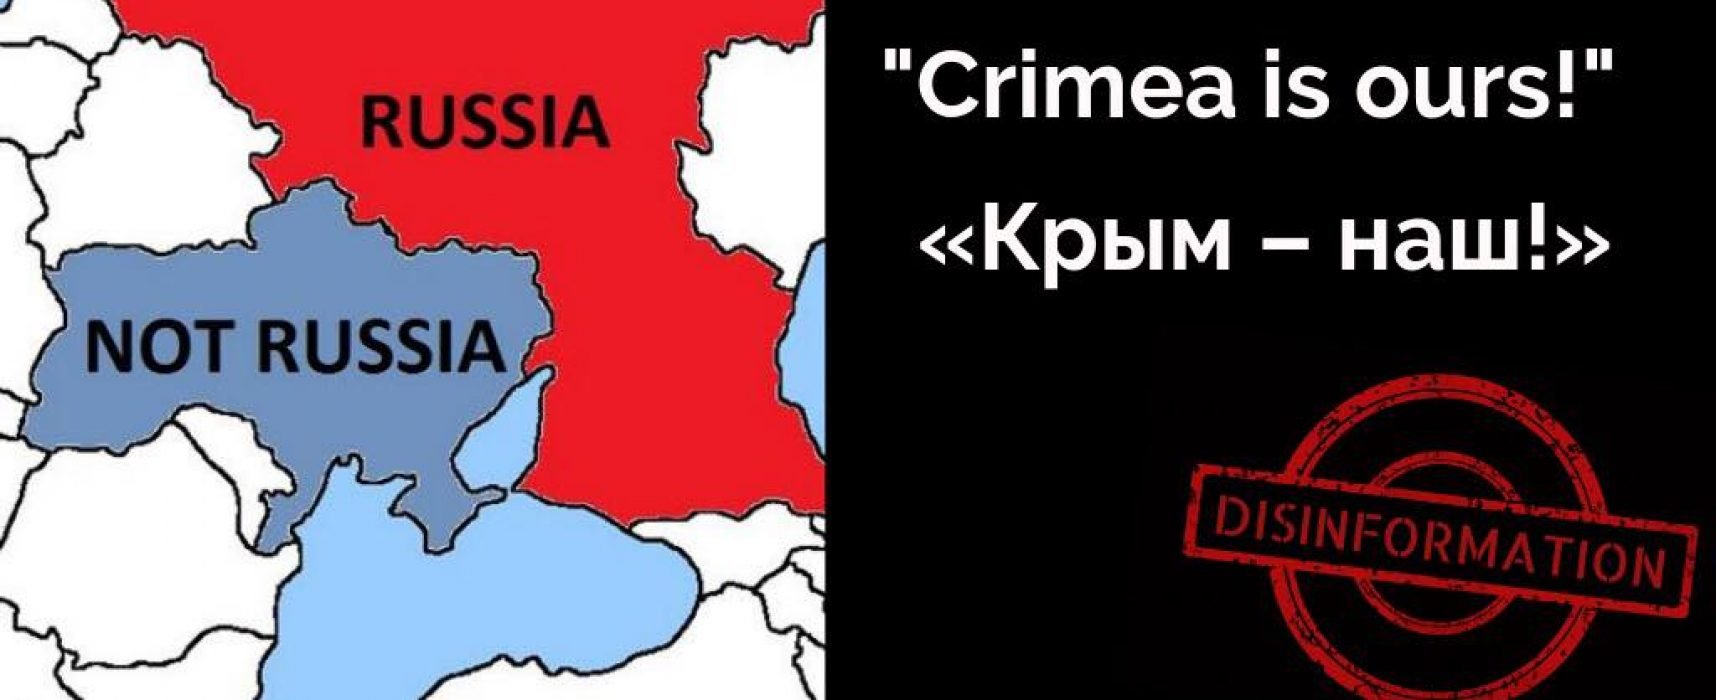 Crimea: Game not over